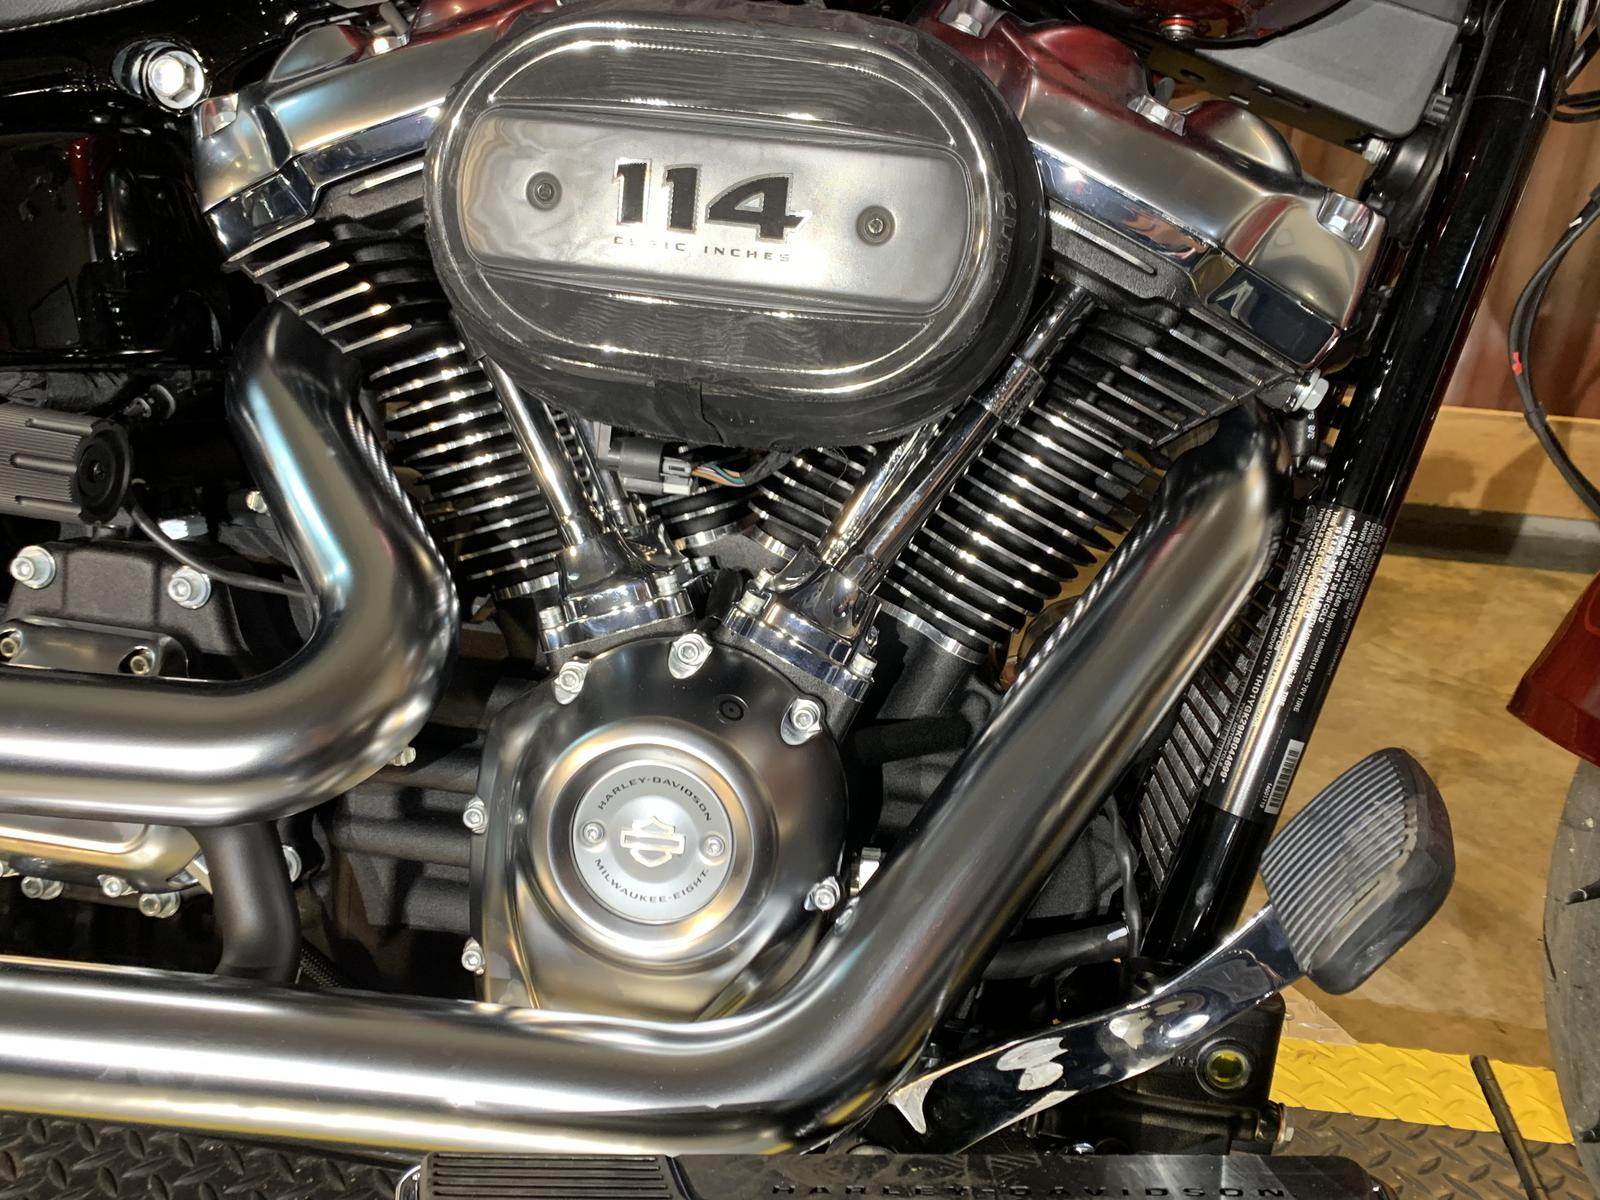 2019 Harley-Davidson® Softail Fat Boy 114 for sale in Southaven, MS